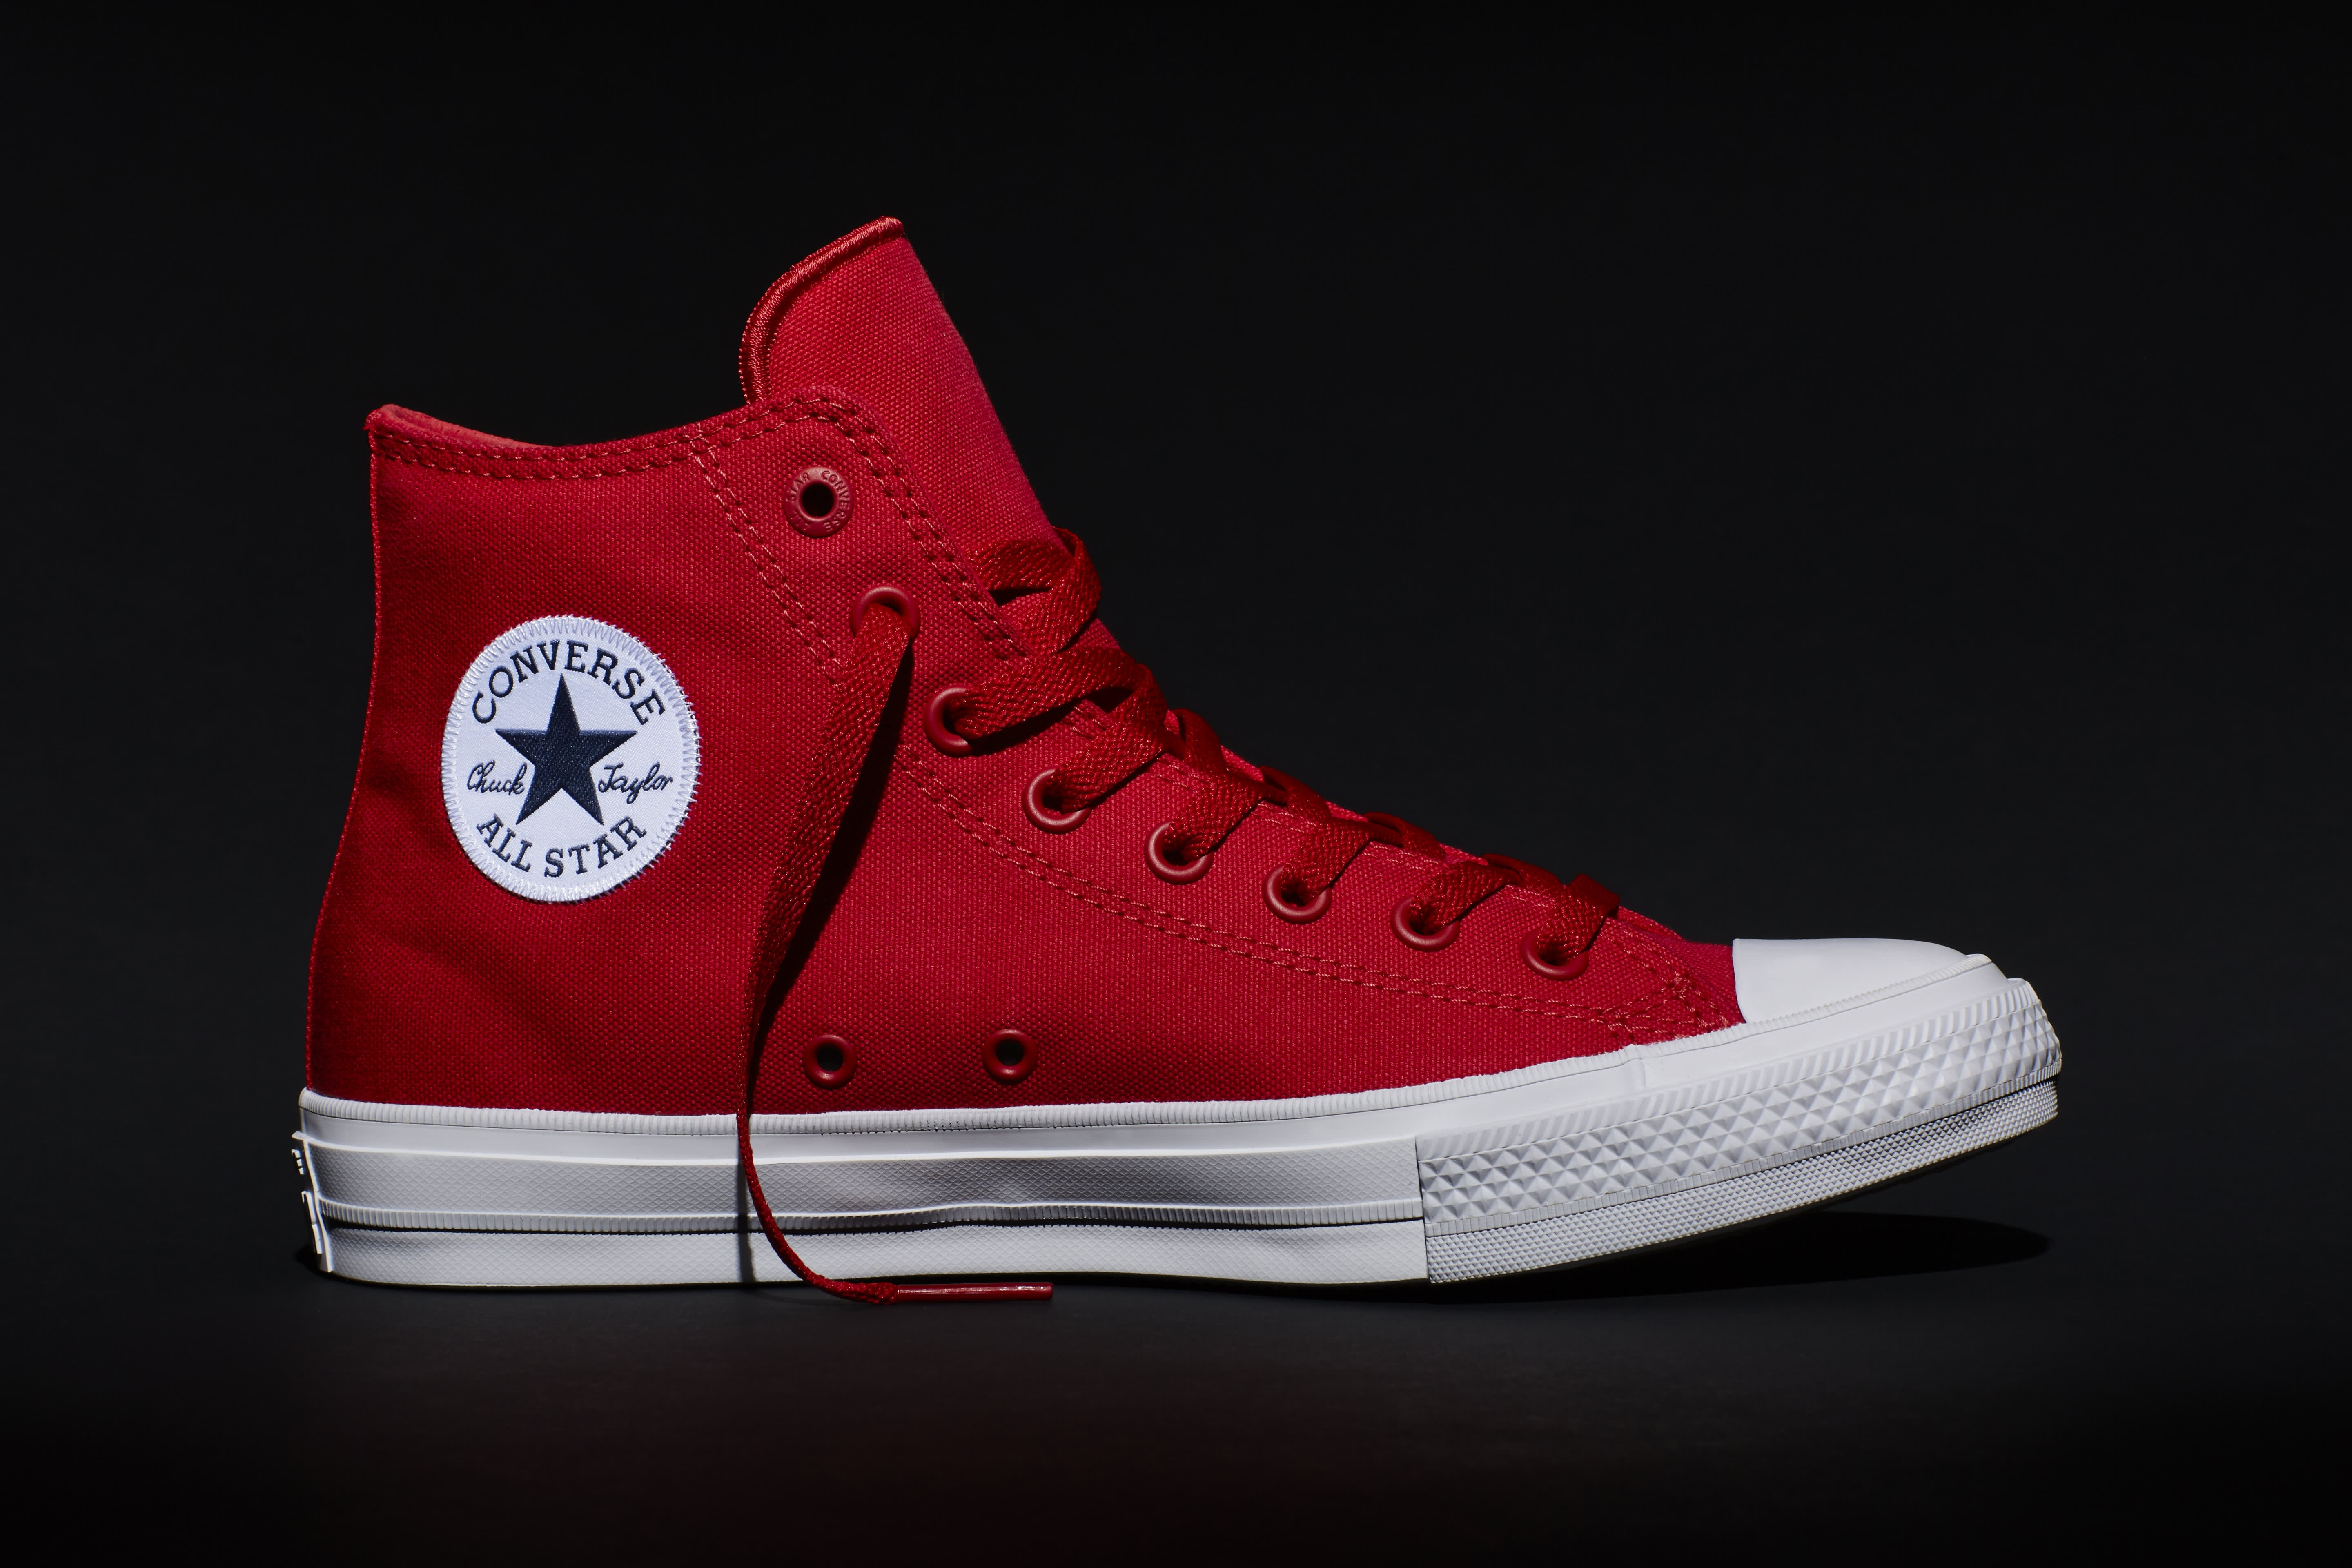 7144ab958004 Converse makes first change in a century to the Chuck Taylor All Star  sneaker